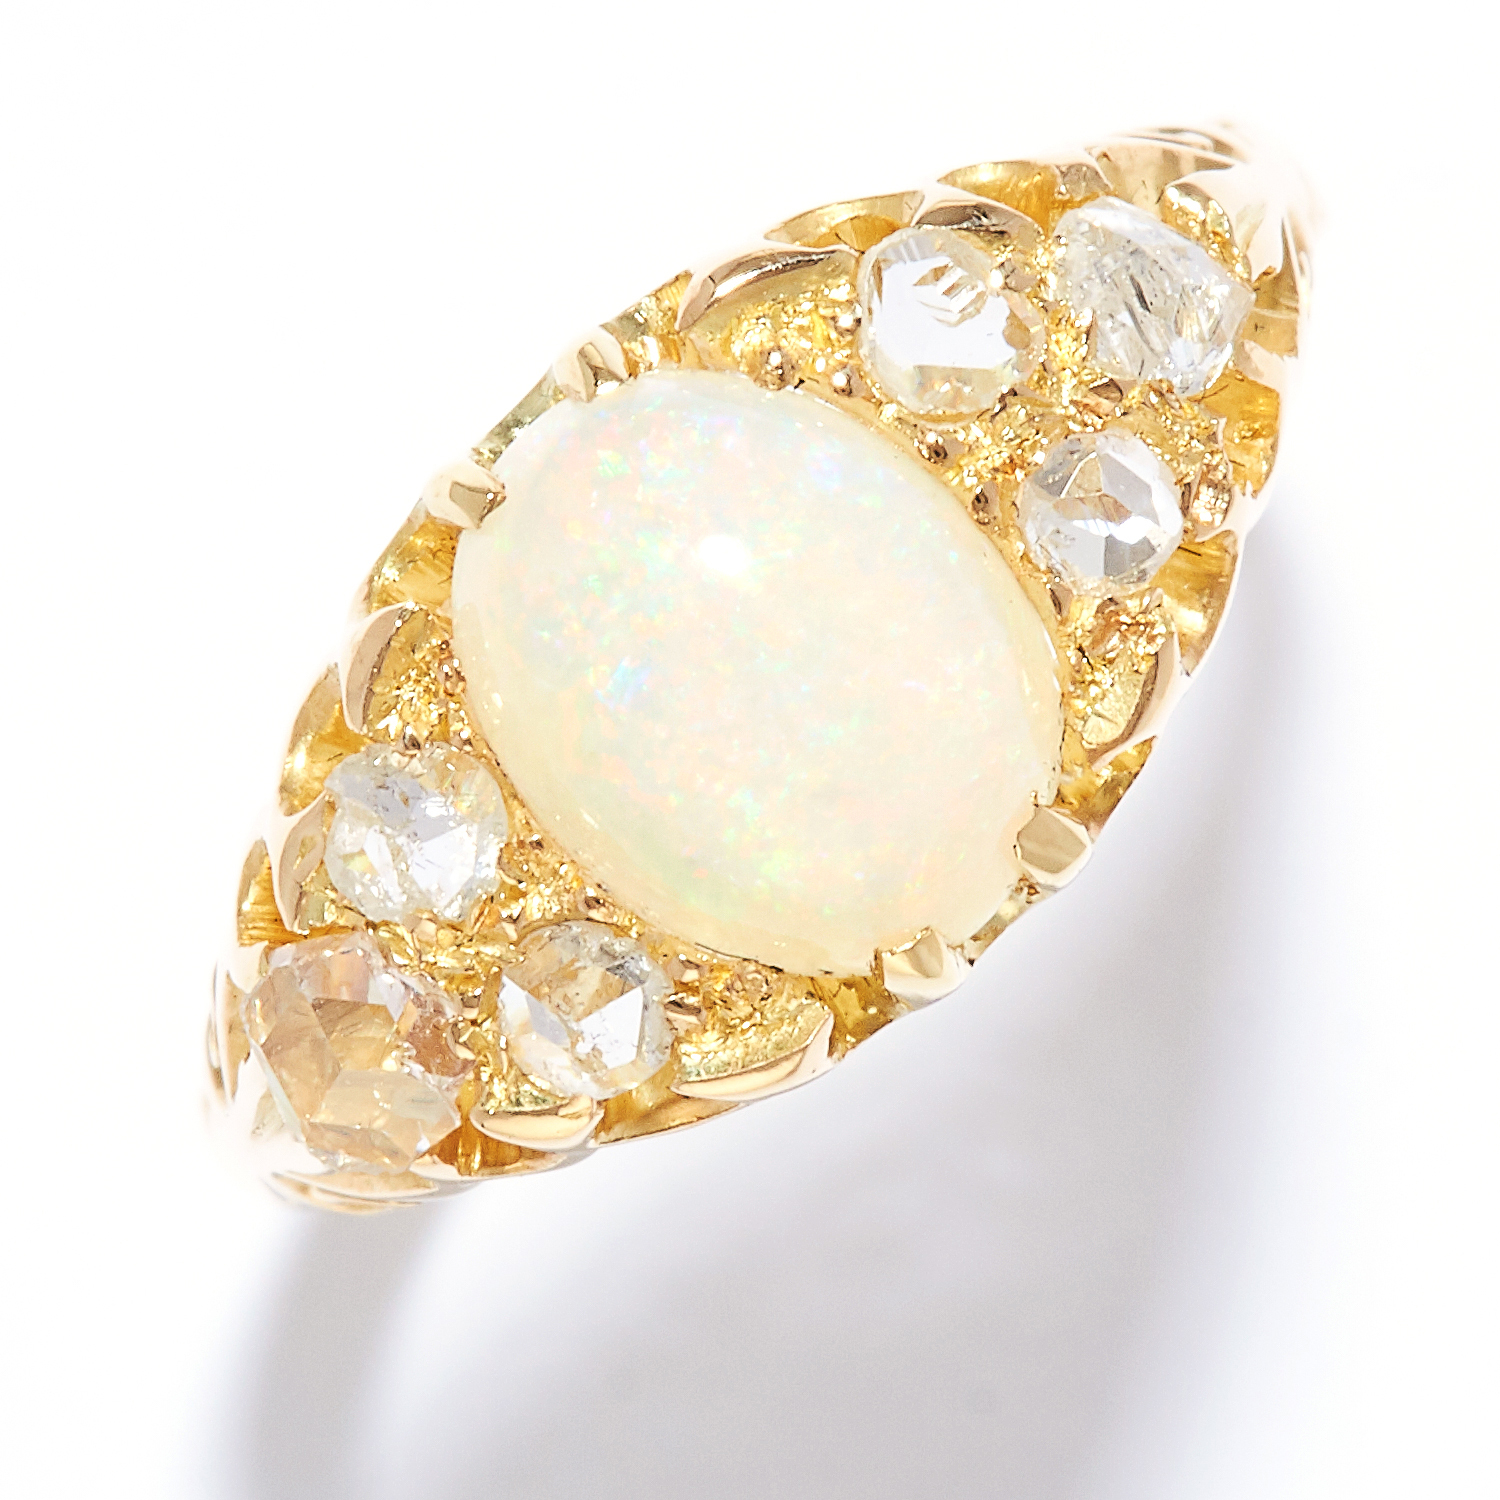 ANTIQUE OPAL AND DIAMOND DRESS RING in high carat yellow gold, set with a cabochon opal and rose cut